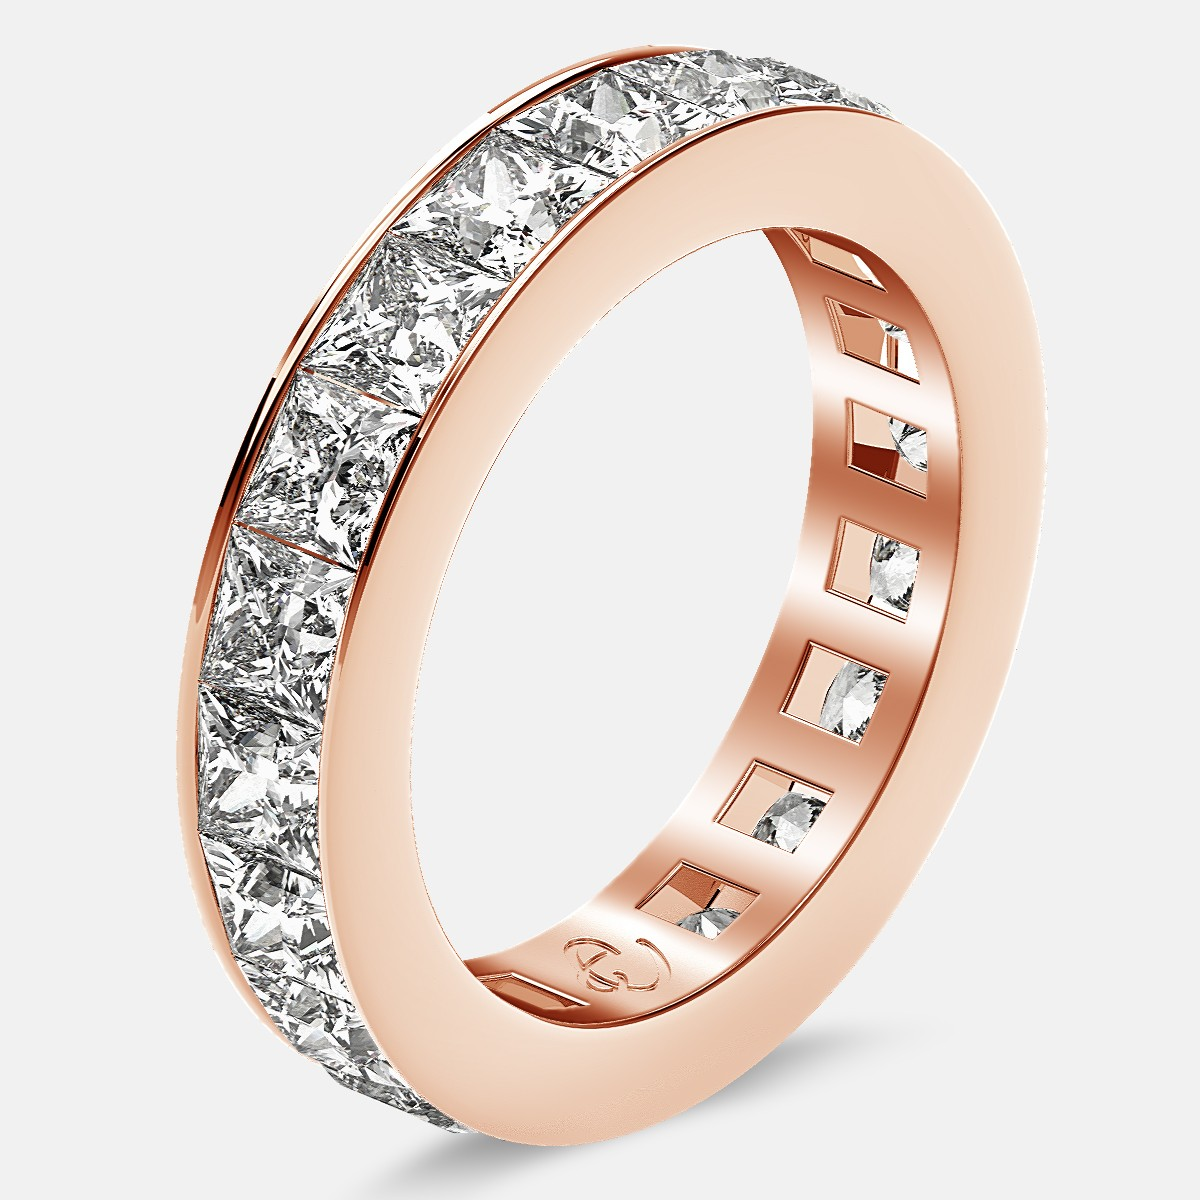 Eternity Ring with Channel Set Princess Cut Diamonds in 18k Rose Gold